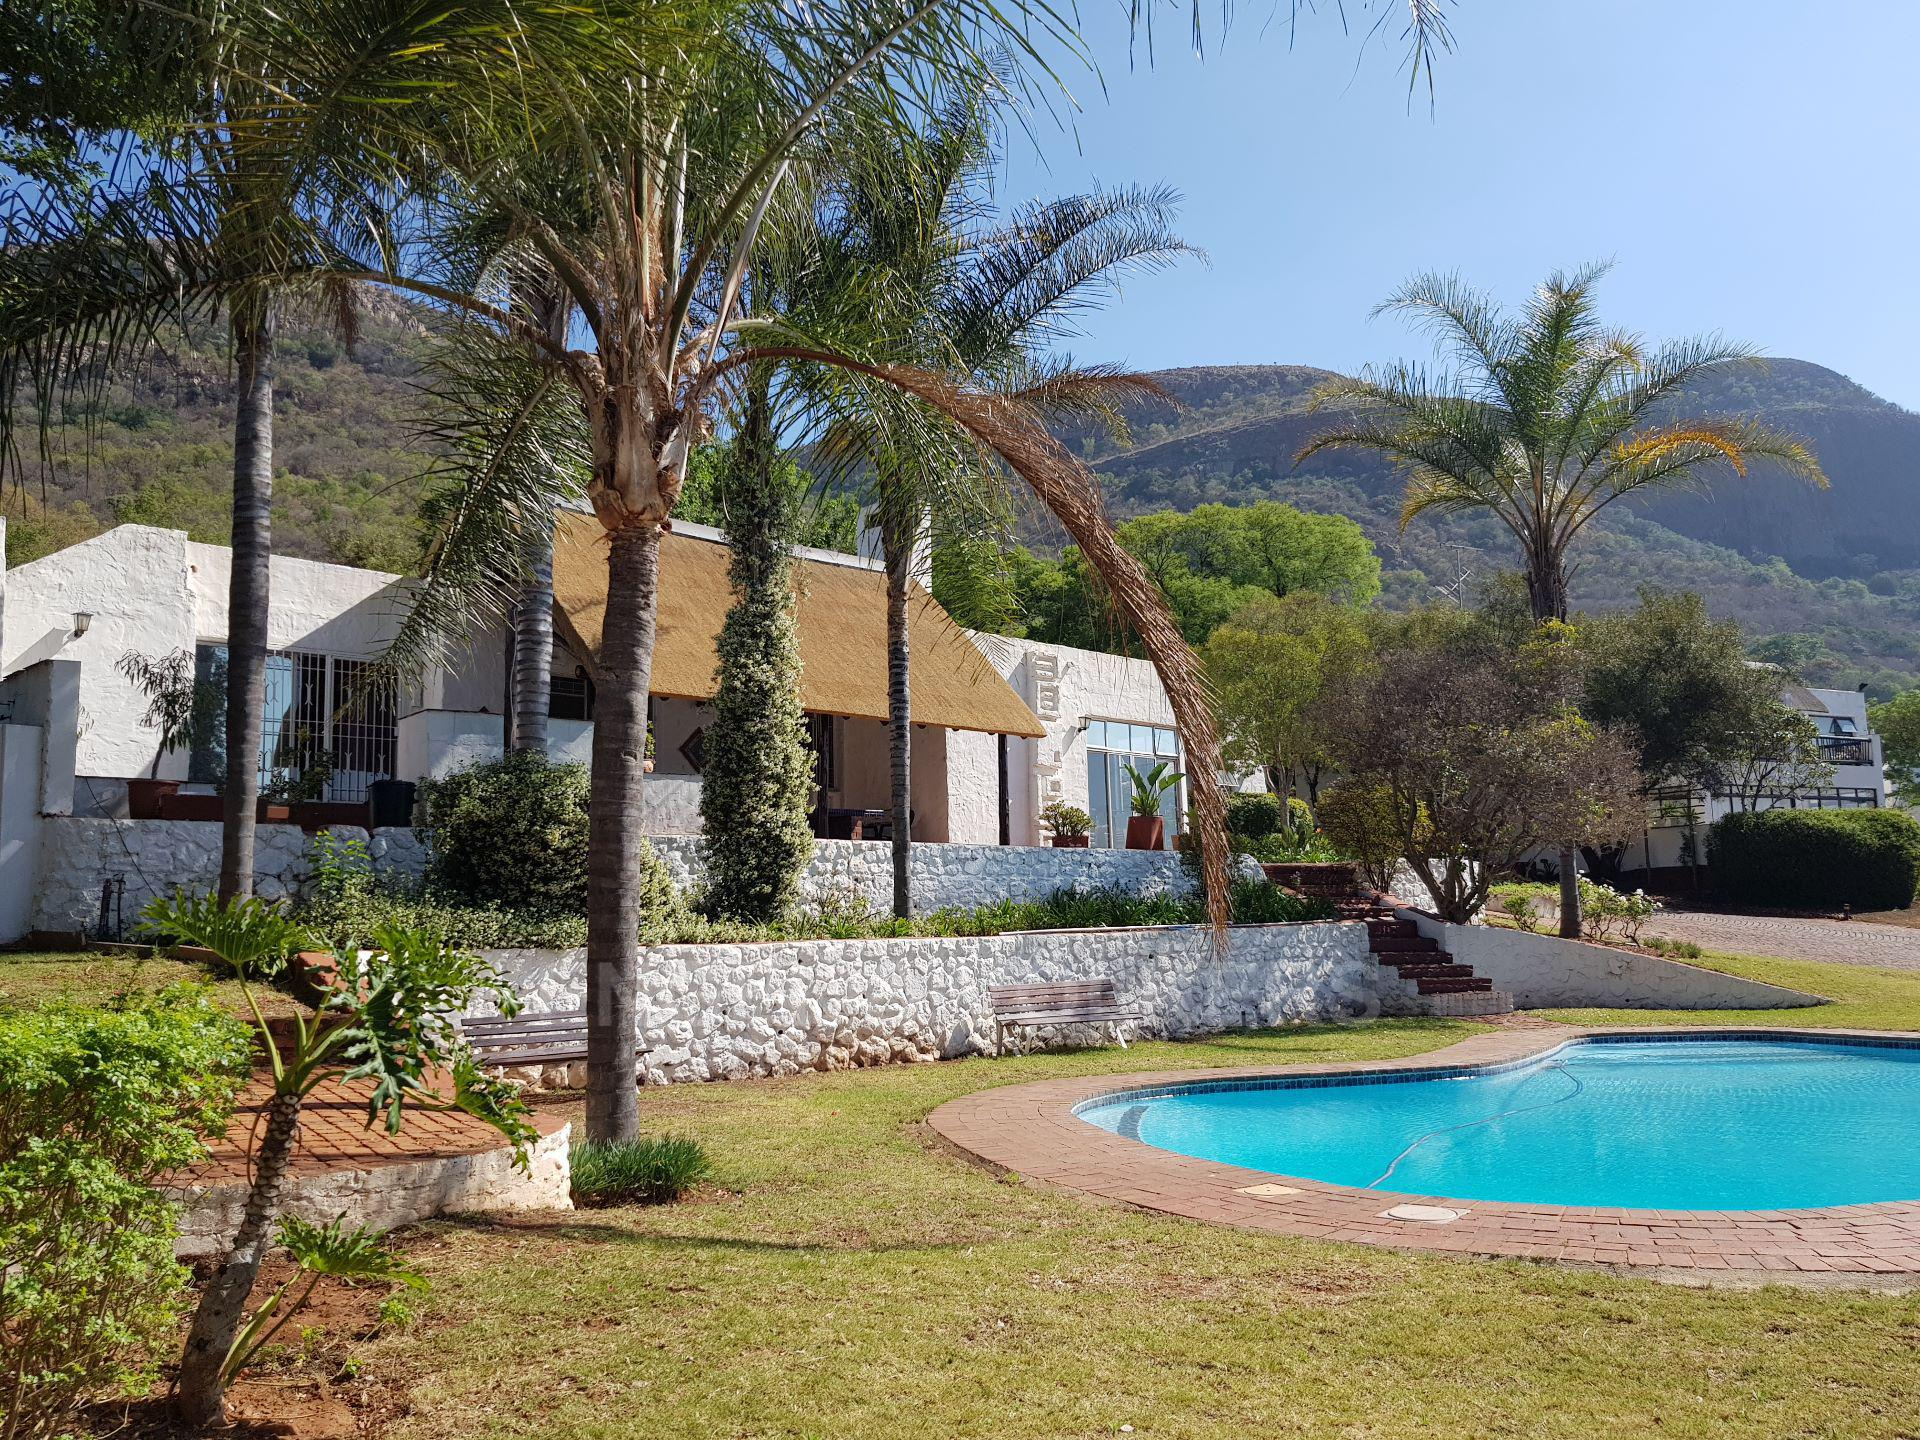 House in Mount Kos - View of communal pool and clubhouse